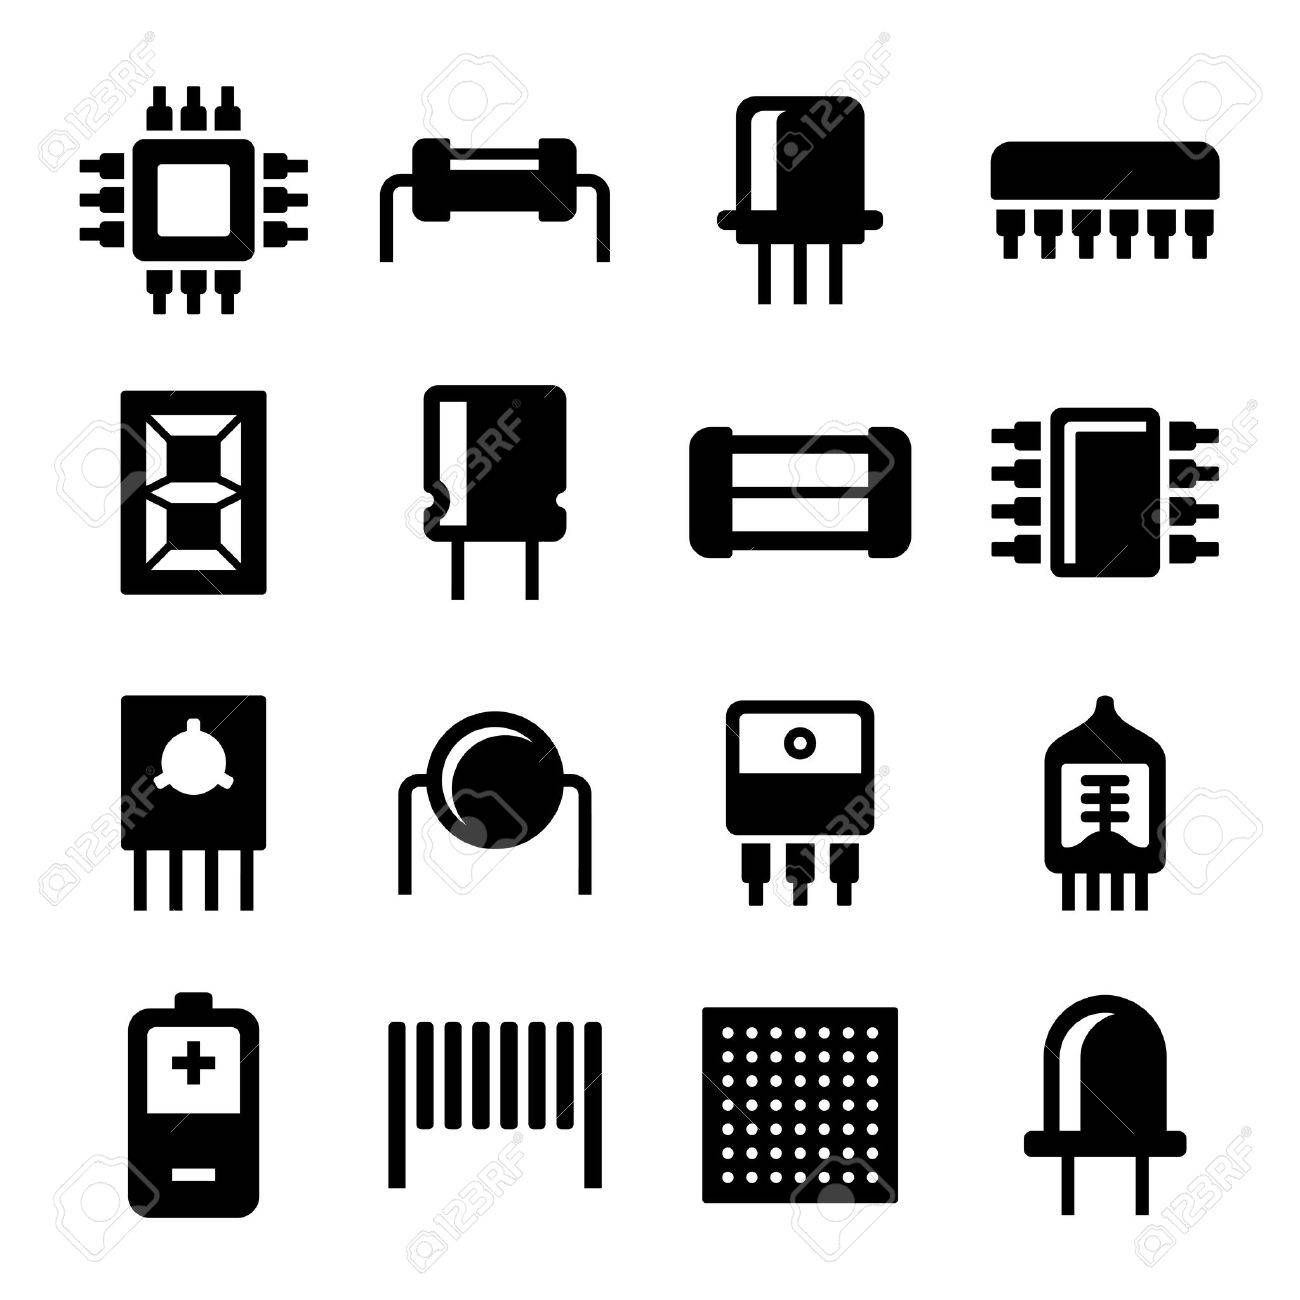 Electronic Components and Microchip Icons Set. illustration - 53666879